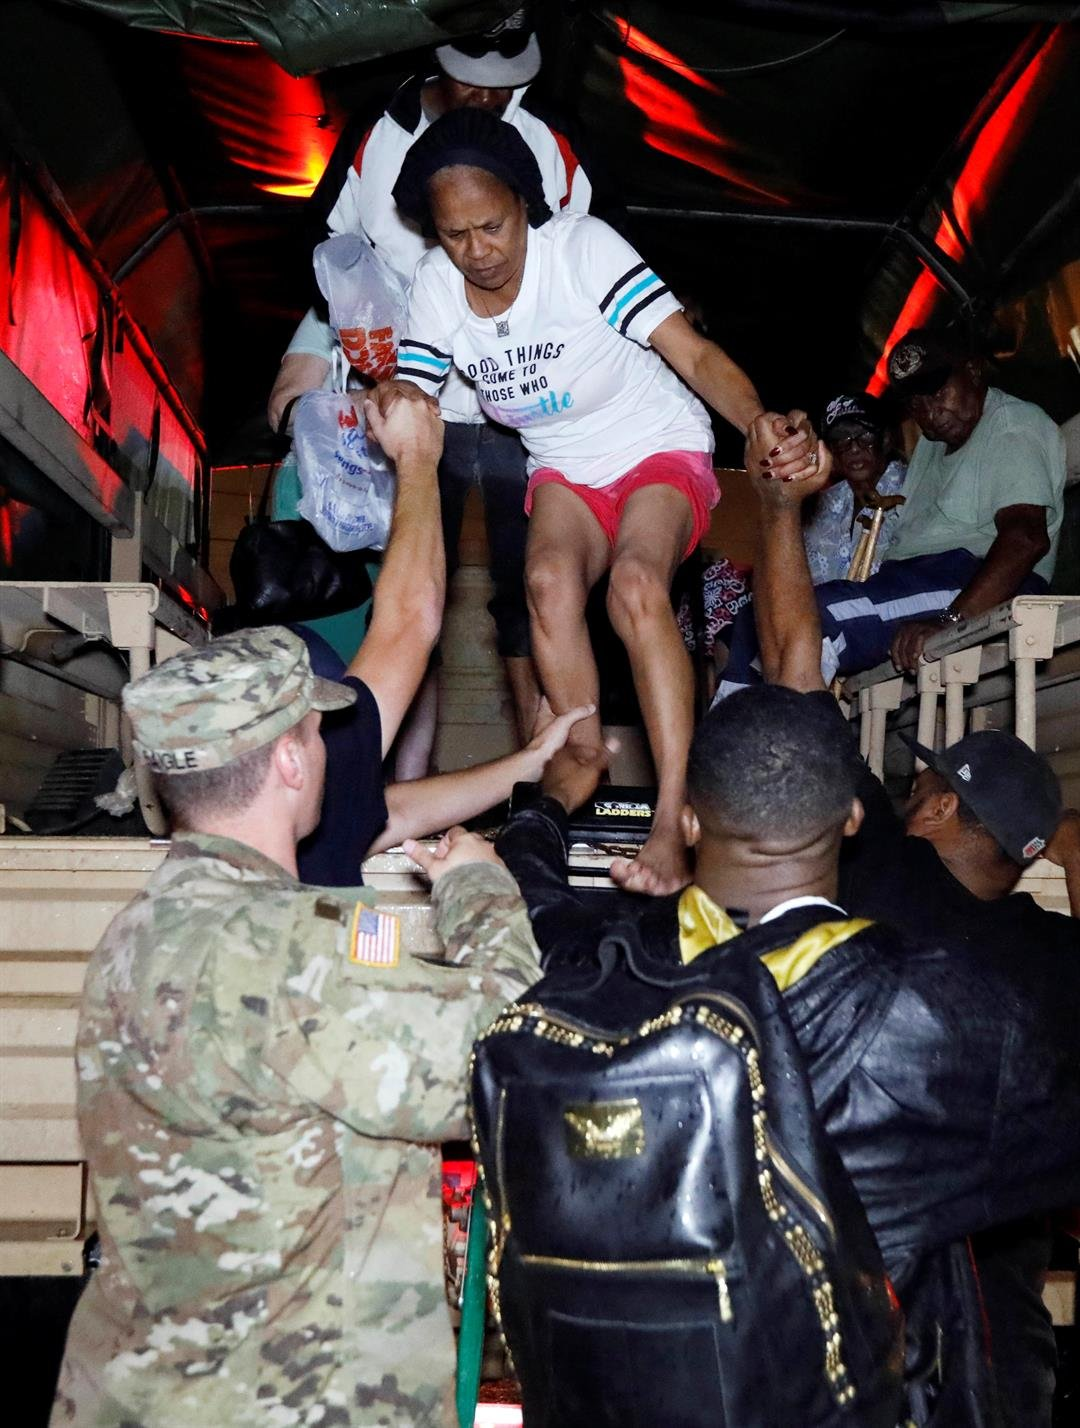 Lake Charles rescue personnel help residents exit from the back of a vehicle late Monday night, Aug. 28, 2017, in Lake Charles, La. (AP Photo/Rogelio V. Solis)